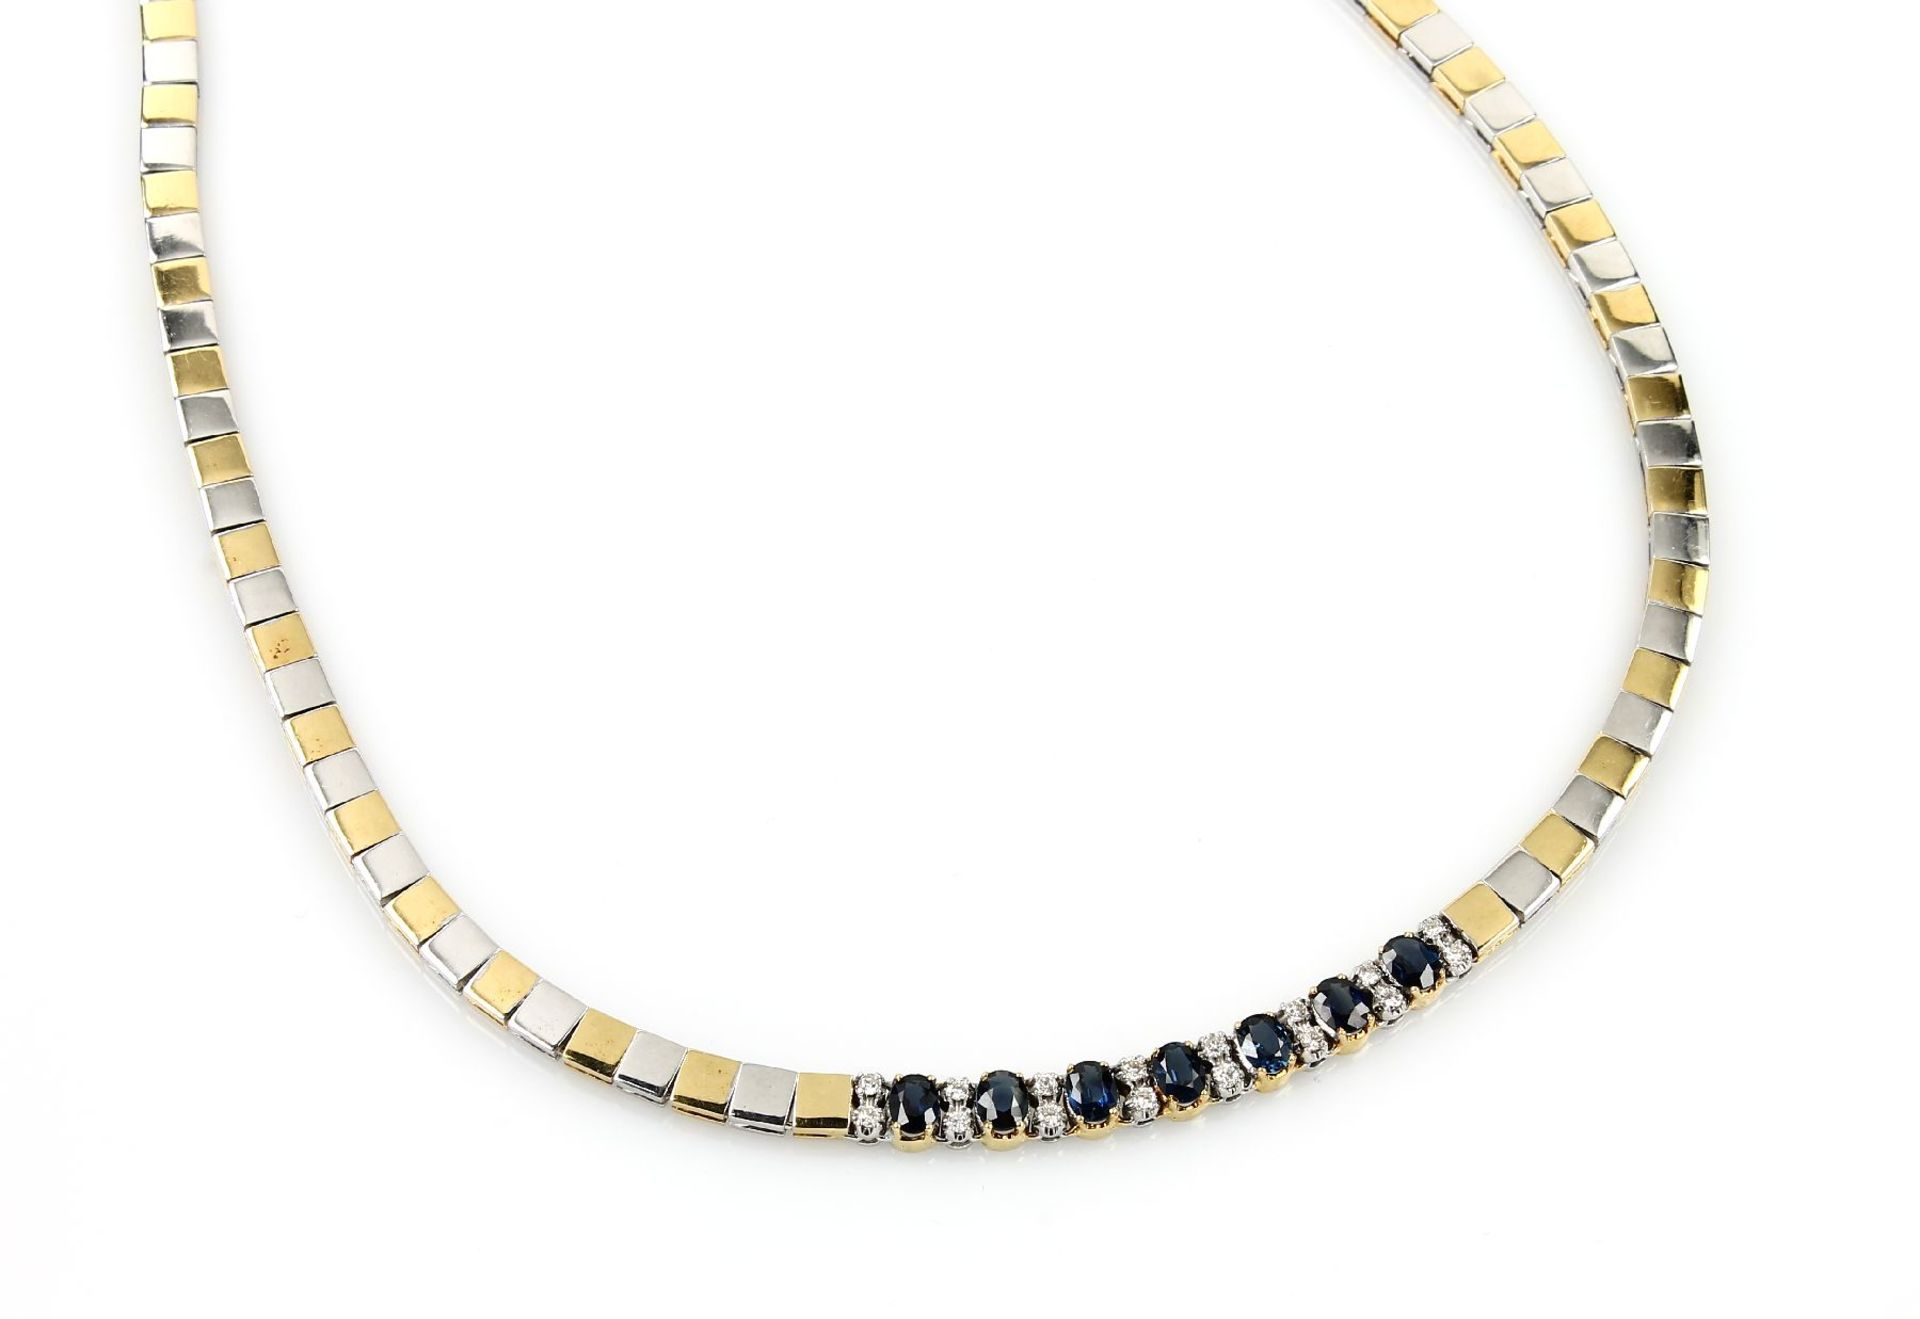 Los 31546 - Necklace with sapphires and brilliants , YG/WG 750/000, 7 oval bevelled sapphires totalapprox. 4.